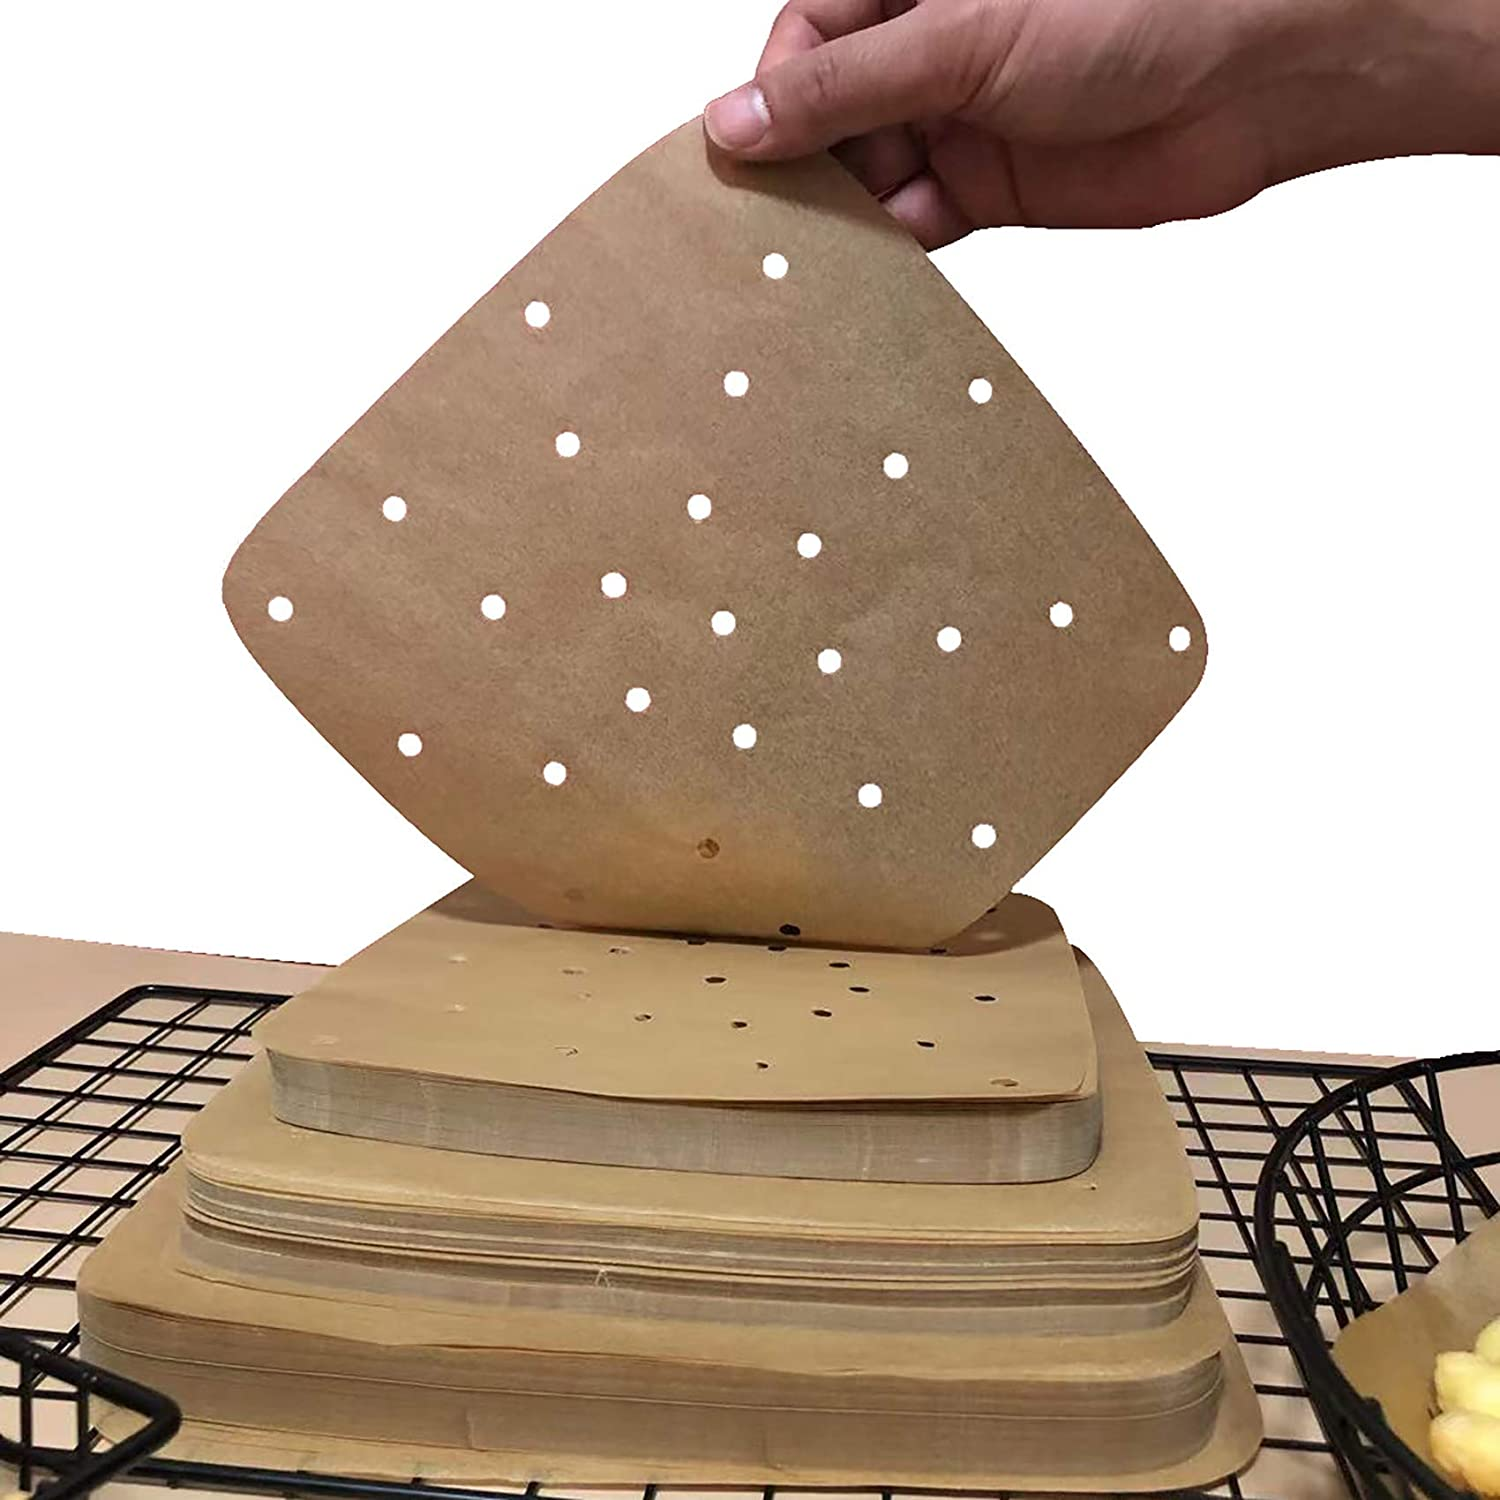 Square Air Fryer Parchment Paper Liners 200Pcs Perforated Parchment Filter Paper Accessories Unbleached for Air Fryer, Steaming Basket,Bamboo Steamer,No Burn, Easy Cleanup (Light Brown, 8.5 Inch)